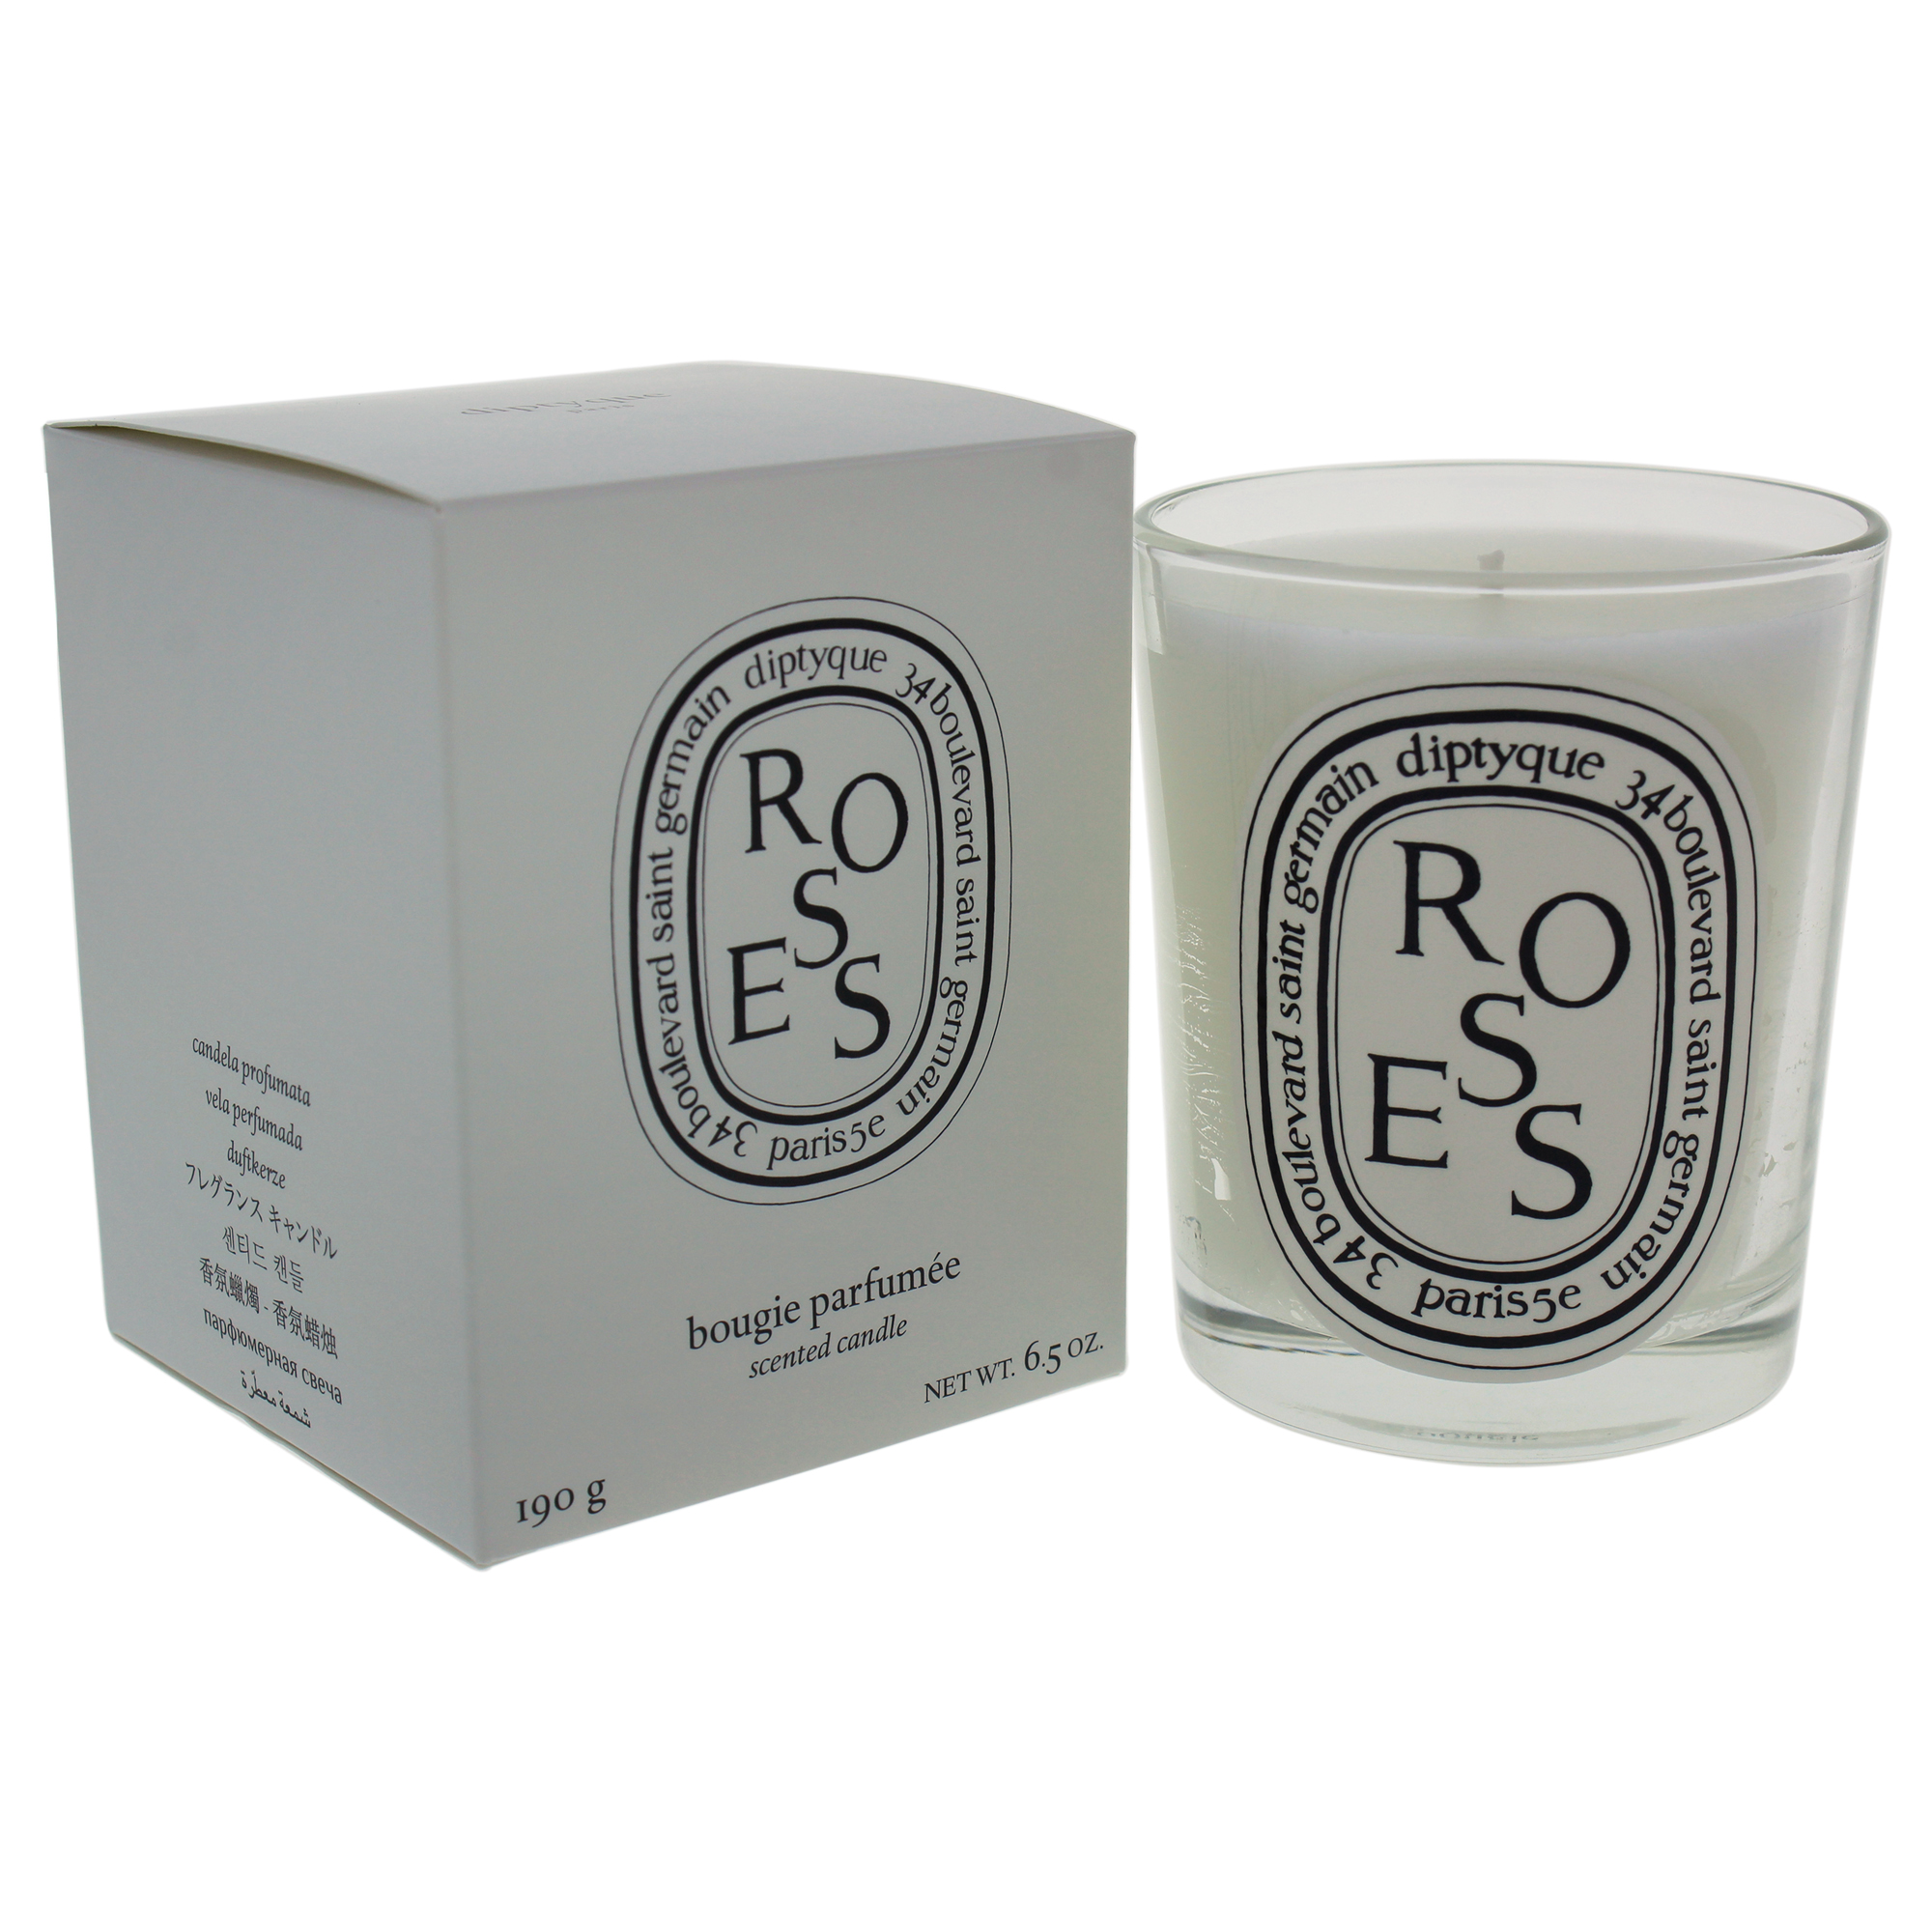 Roses Sce nted Candle by Diptyque for Unisex - 6.5 oz Candle